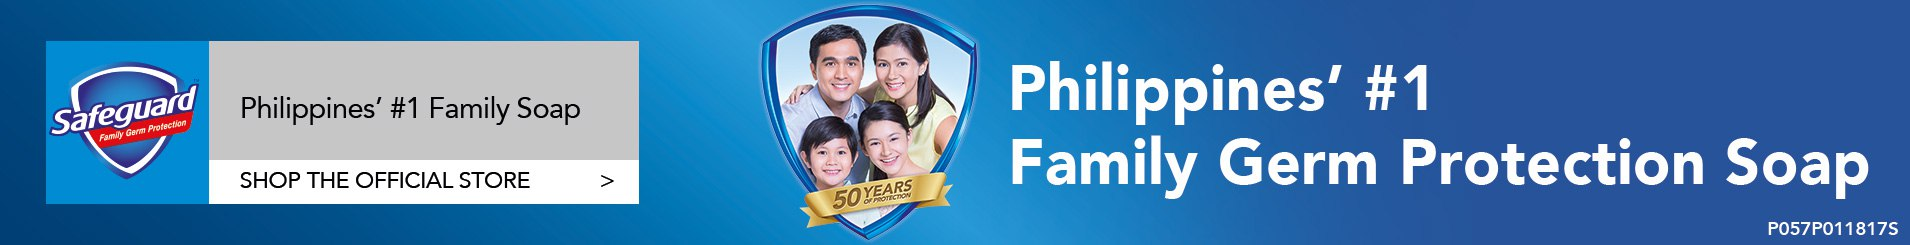 Safeguard Soap Philippines